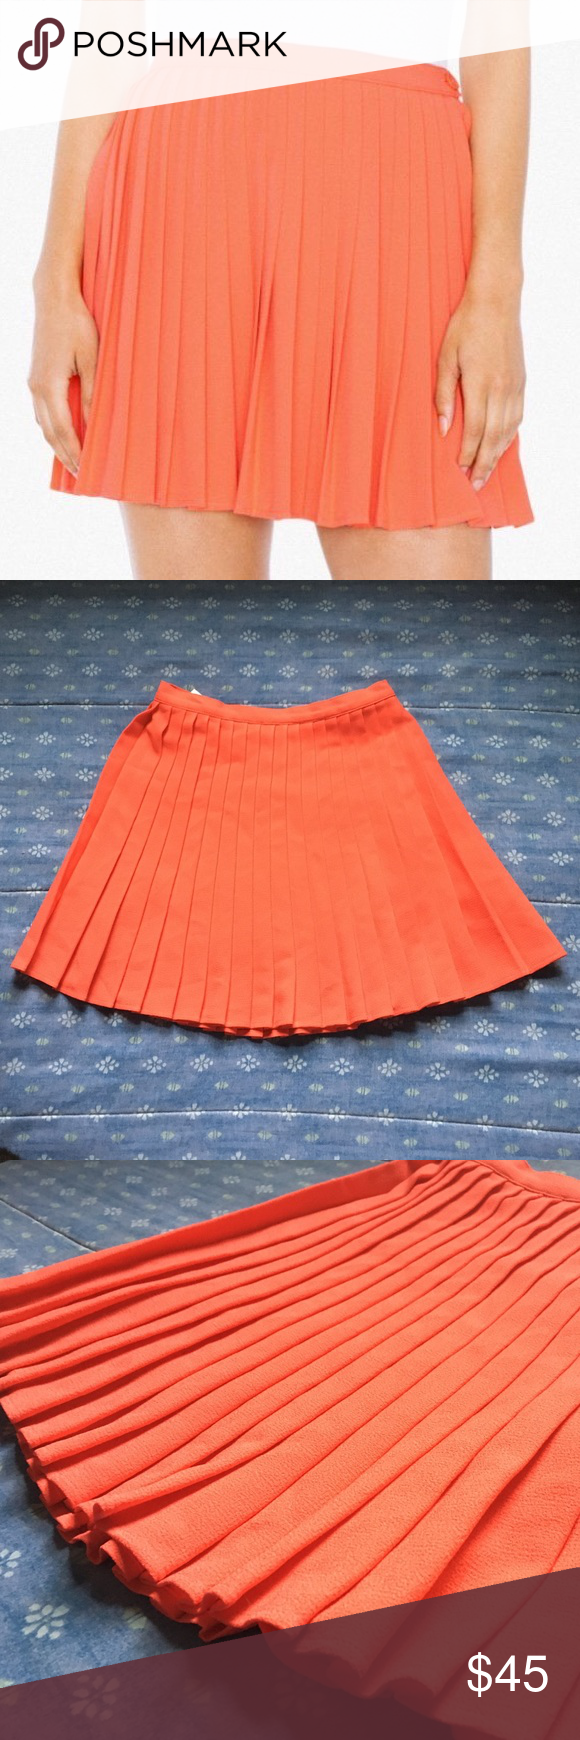 a52ef8e60d American Apparel Crepe Sunburst Pleated Skirt This coral skirt has all-over  pleats, a high waist, and button & zipper closure. New with tags--never  been ...